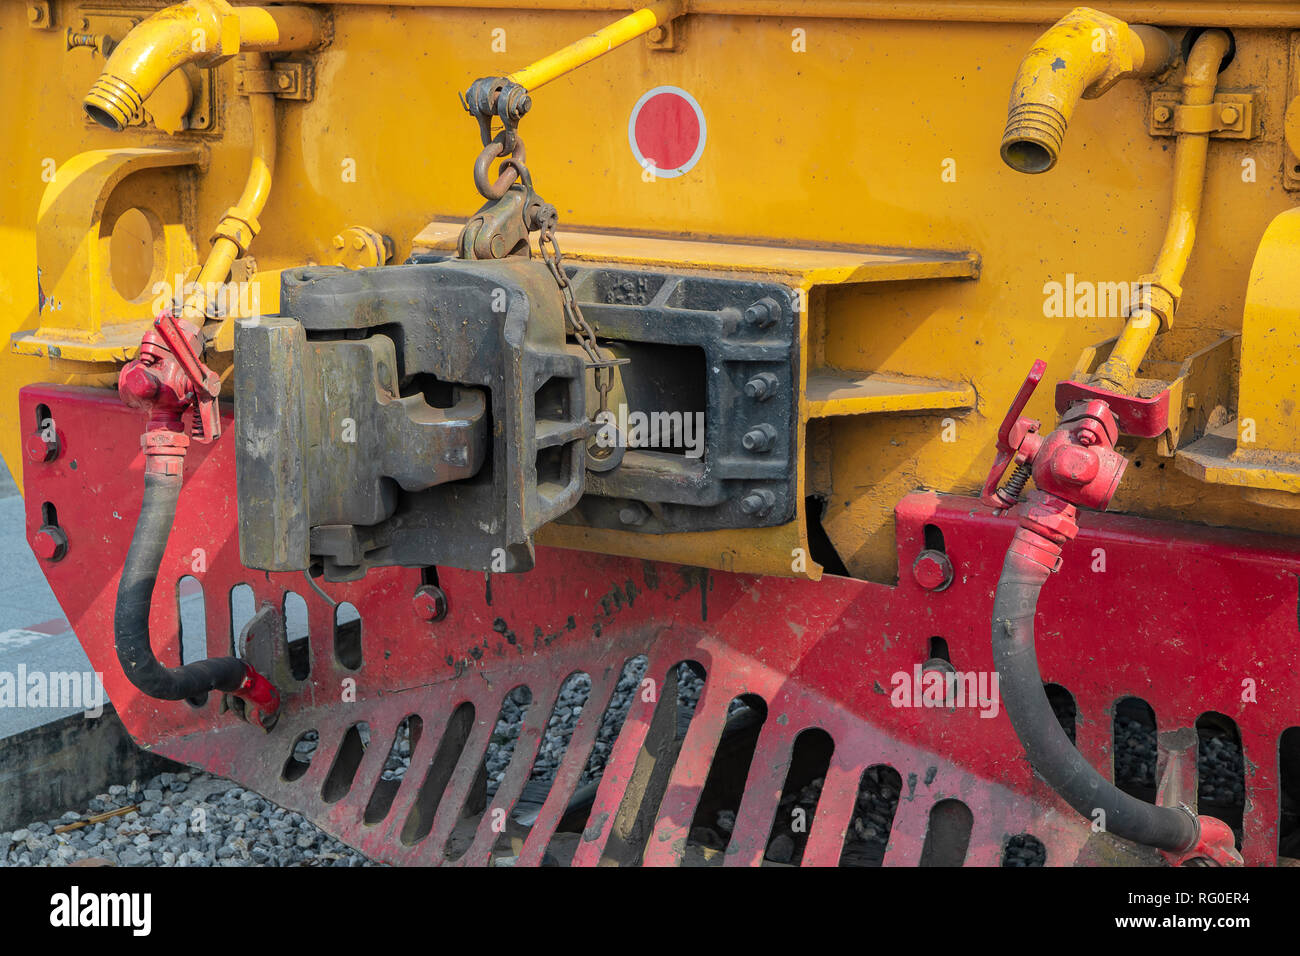 Close up type connection joint or knuckle front of train. - Stock Image